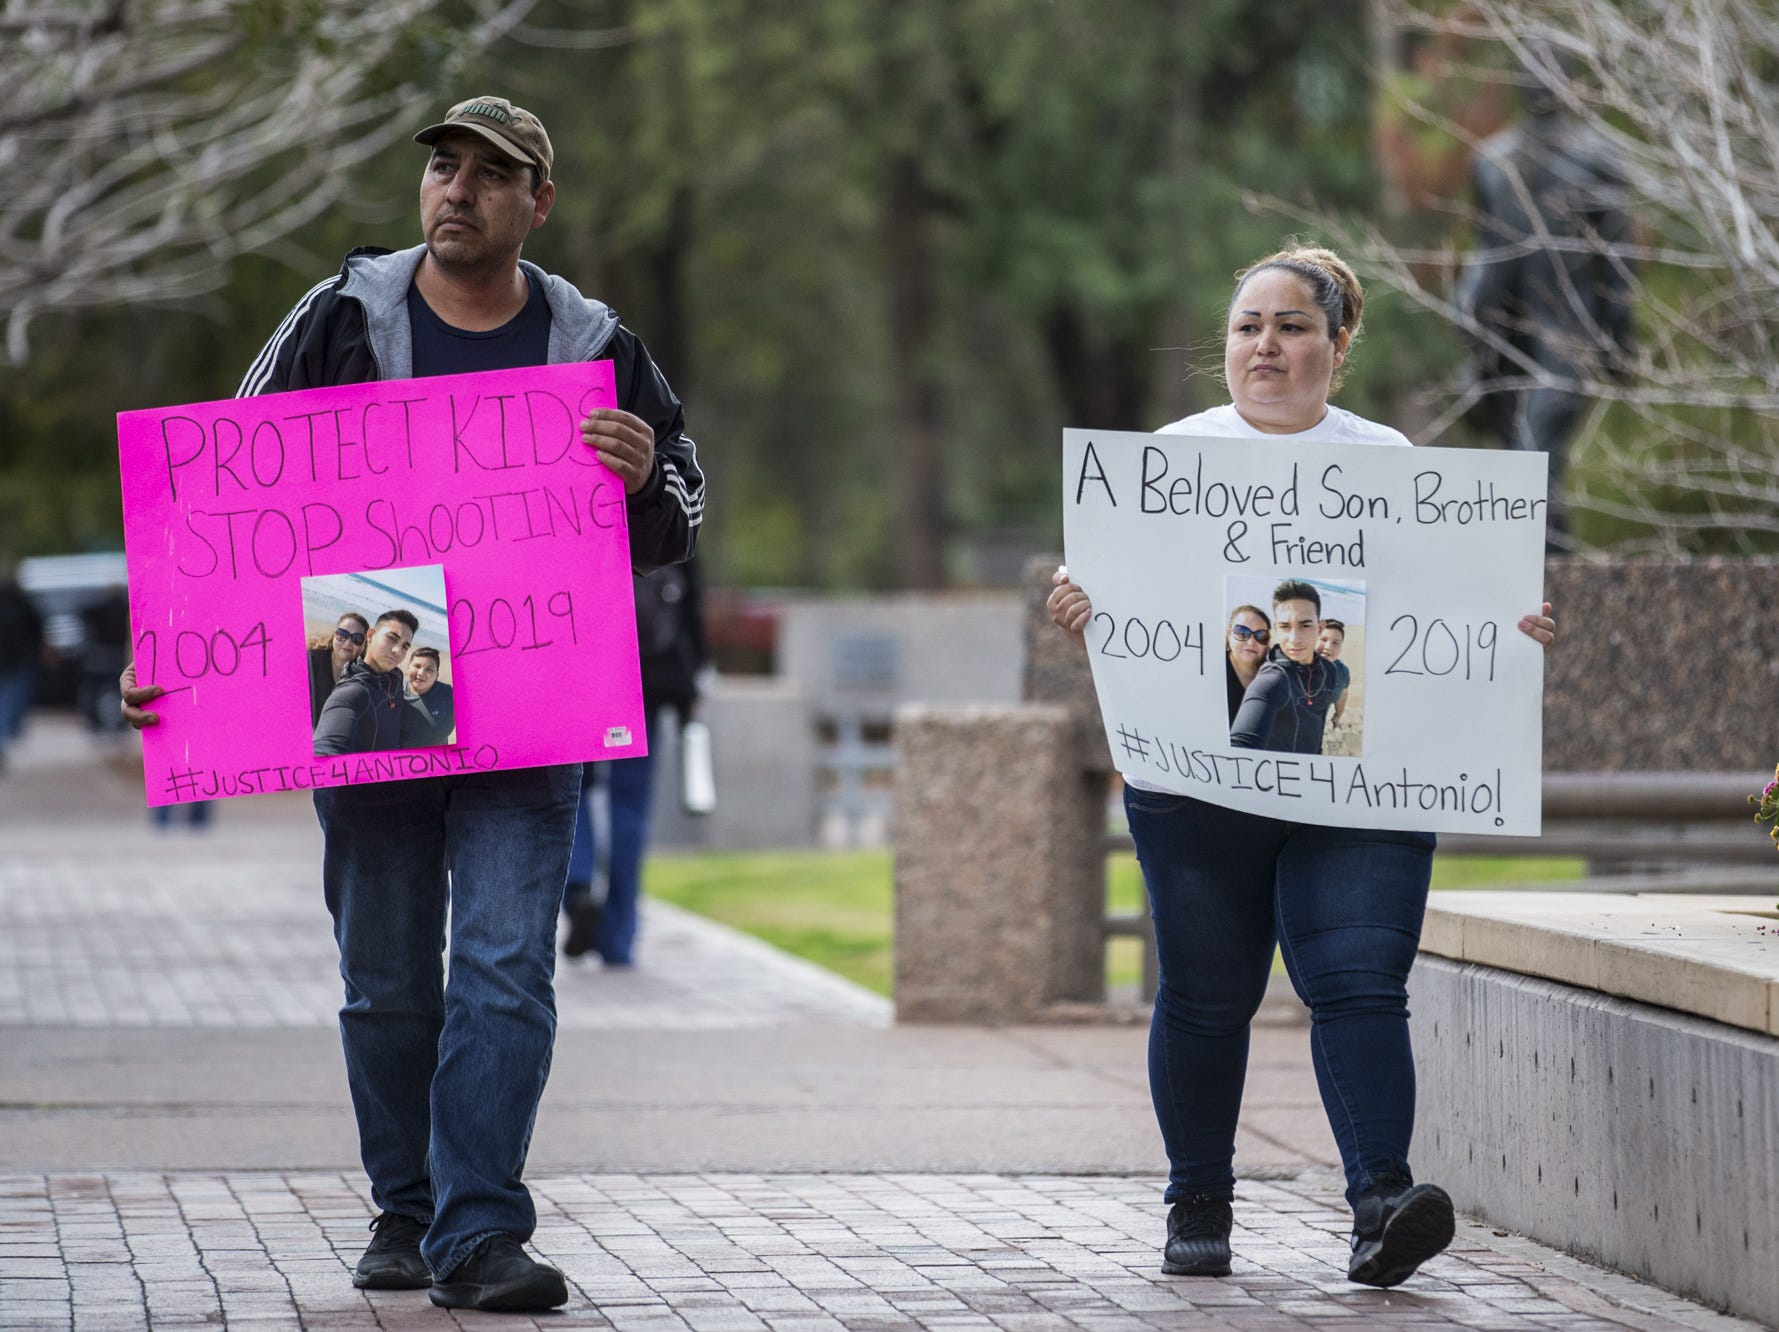 Juan Antonio Arce and Sandra Gonzalez, parents of Antonio Arce, arrive for a rally on the one-month anniversary of the police shooting of the 14-year-old on Friday, Feb. 15, 2019, outside Tempe Police headquarters in Tempe, Ariz.